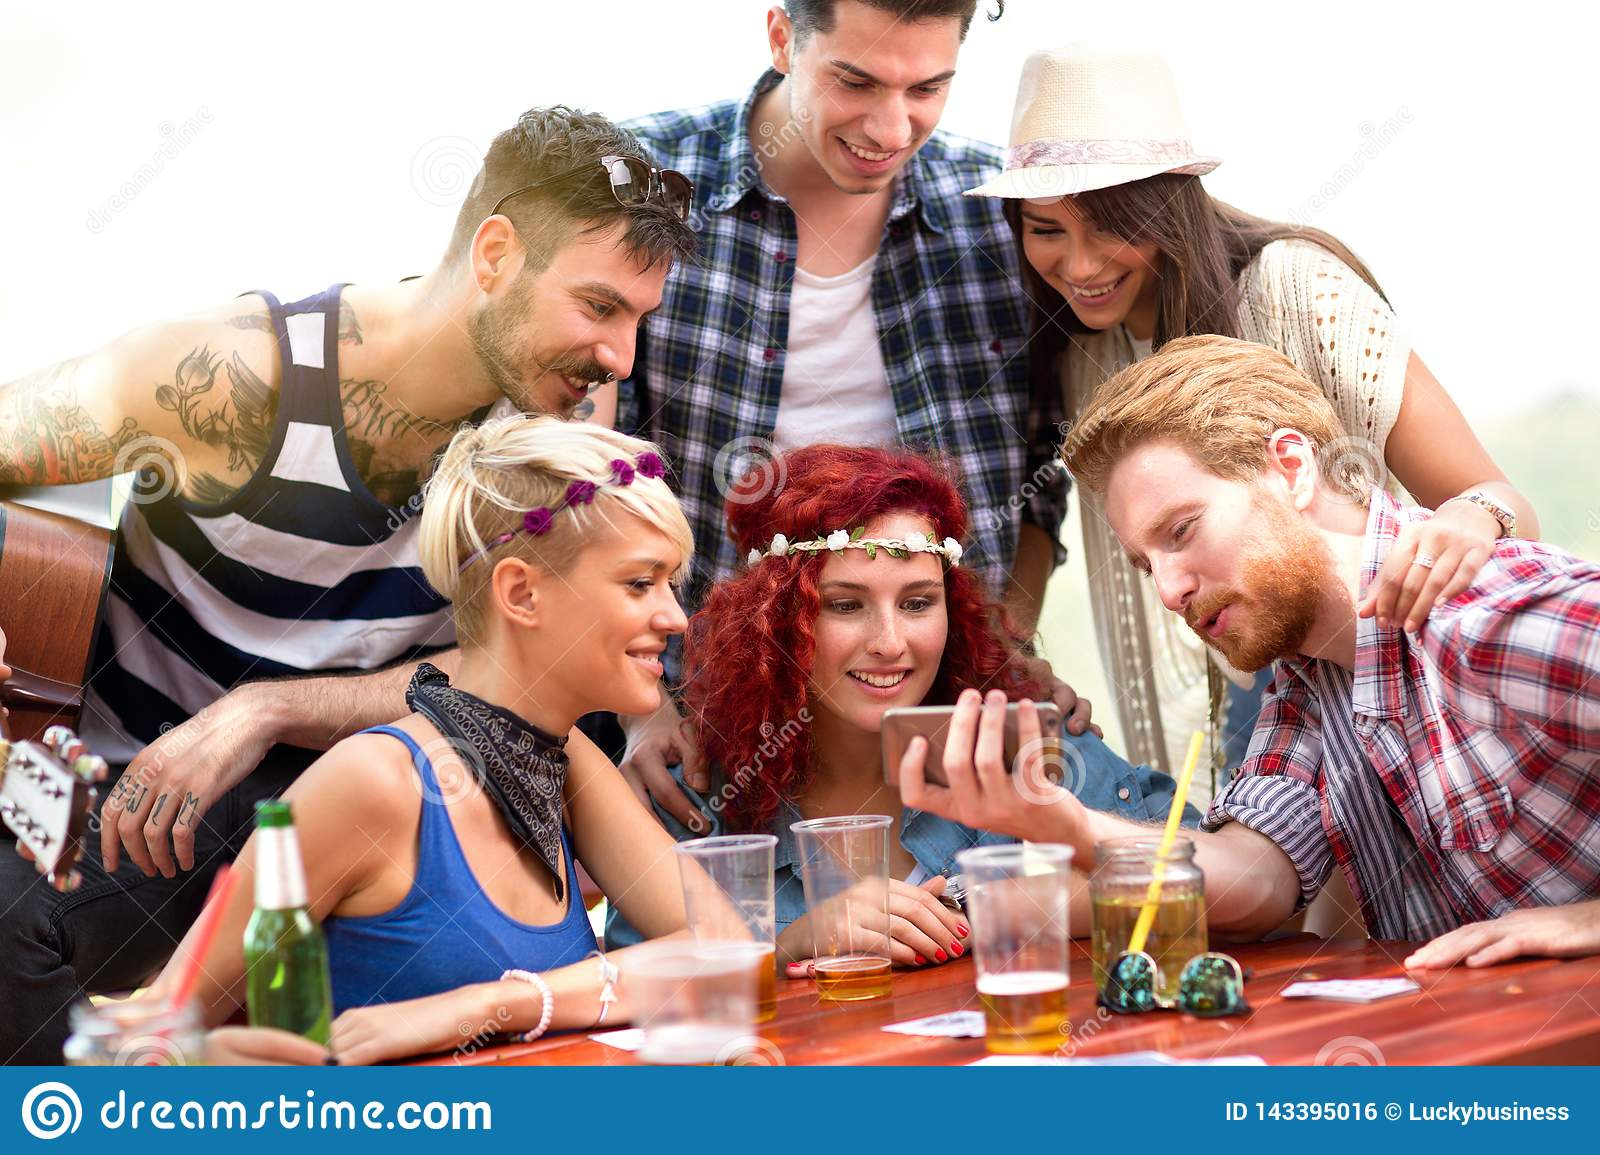 Boys and girls on picnic in nature having fun while watching photos on mobile phone